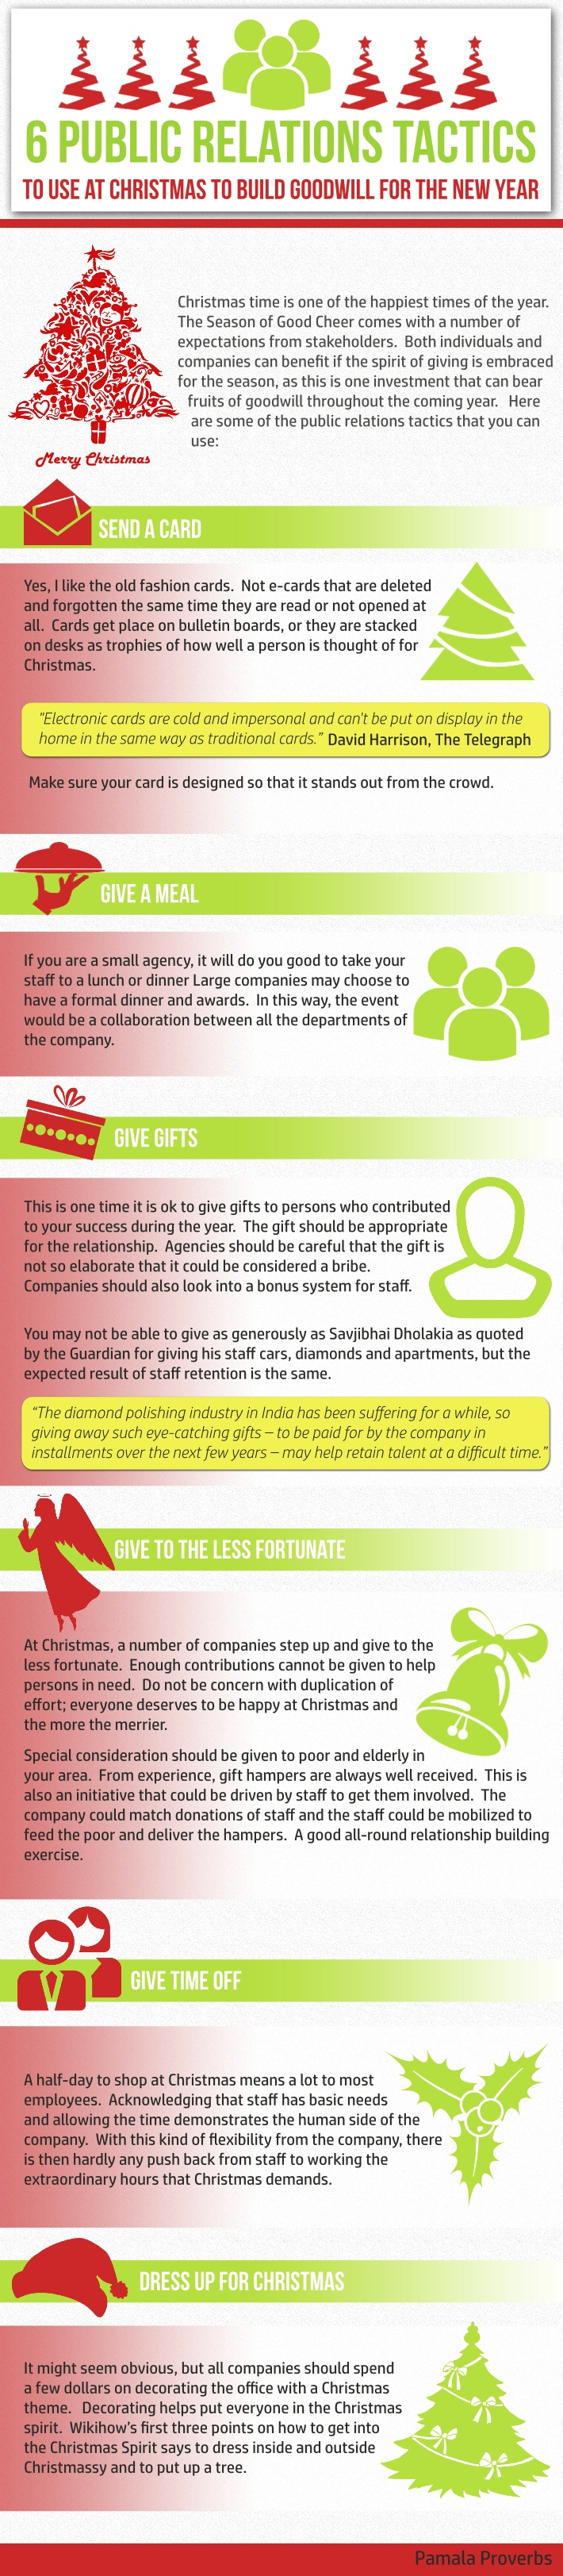 6_Public_Relations_Tactics_To_Use_At_Christmas_Time